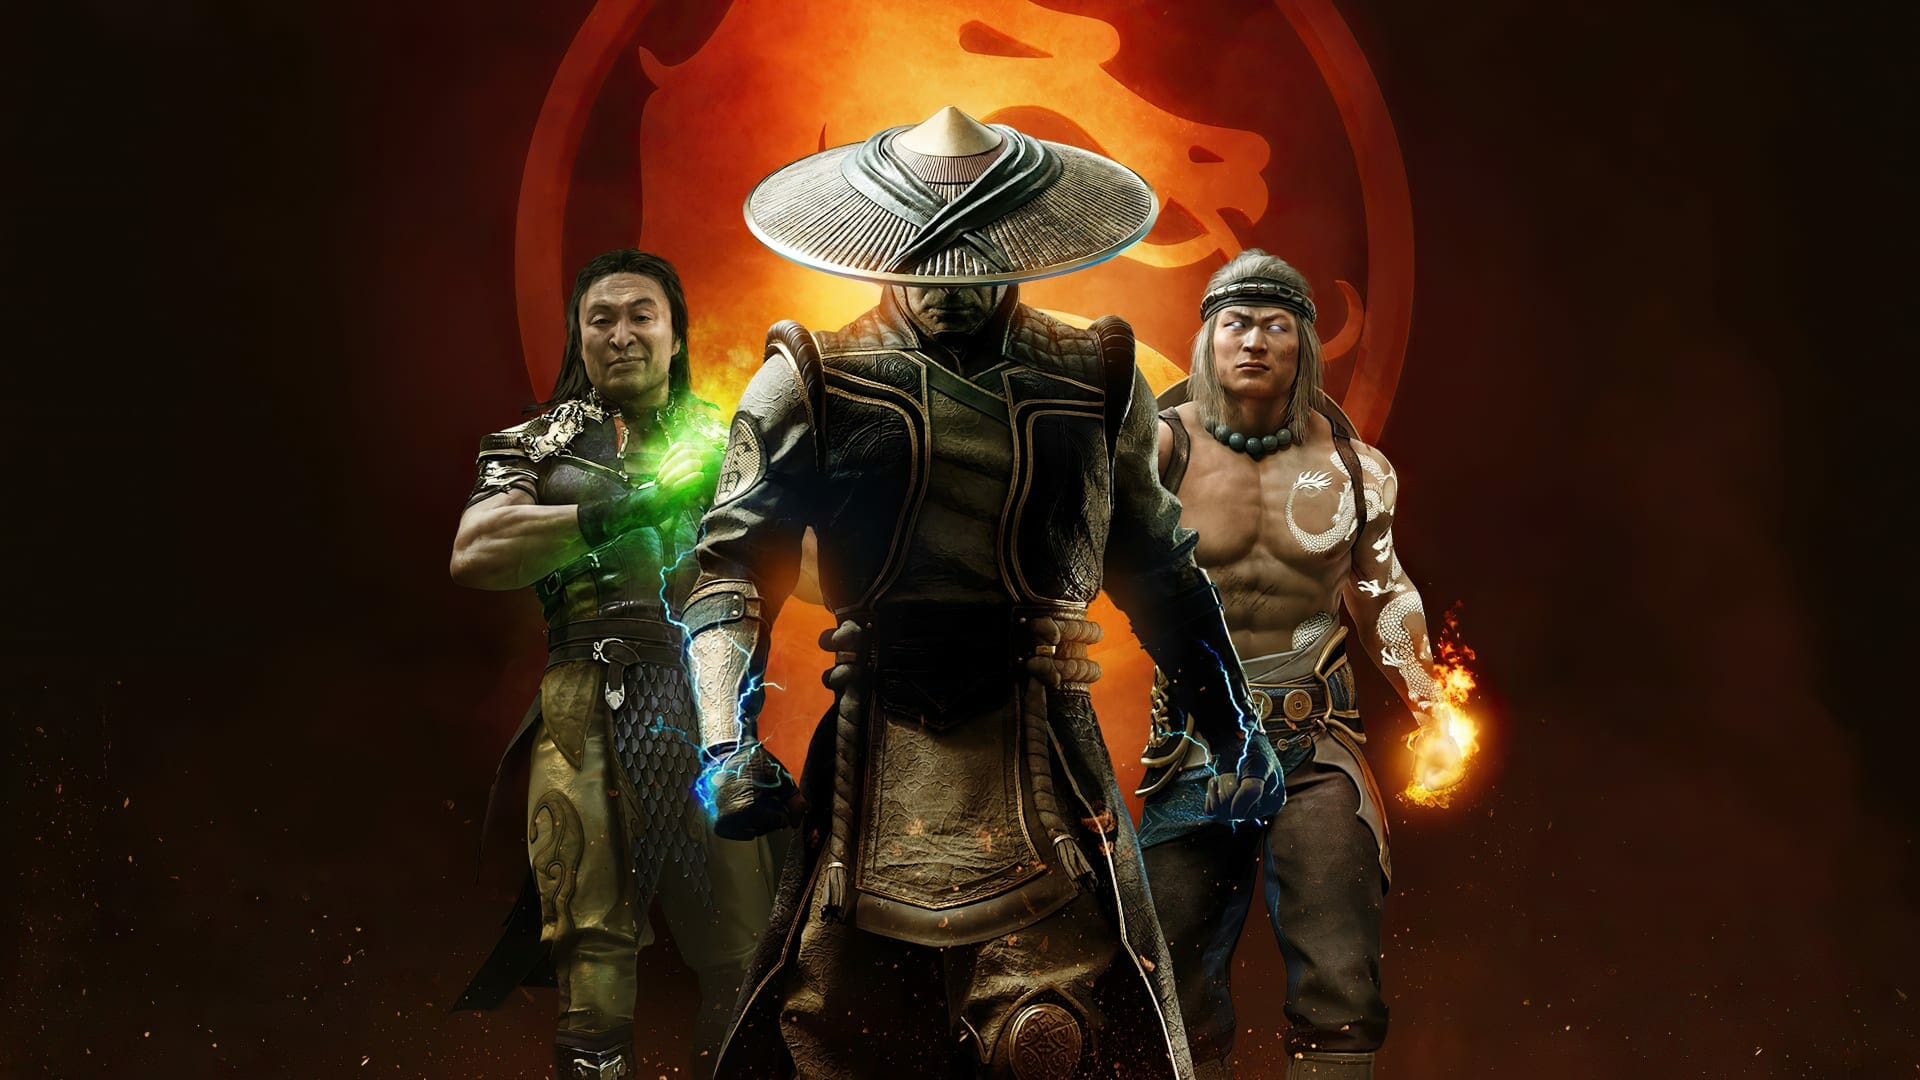 Mortal Kombat 11 Cracked